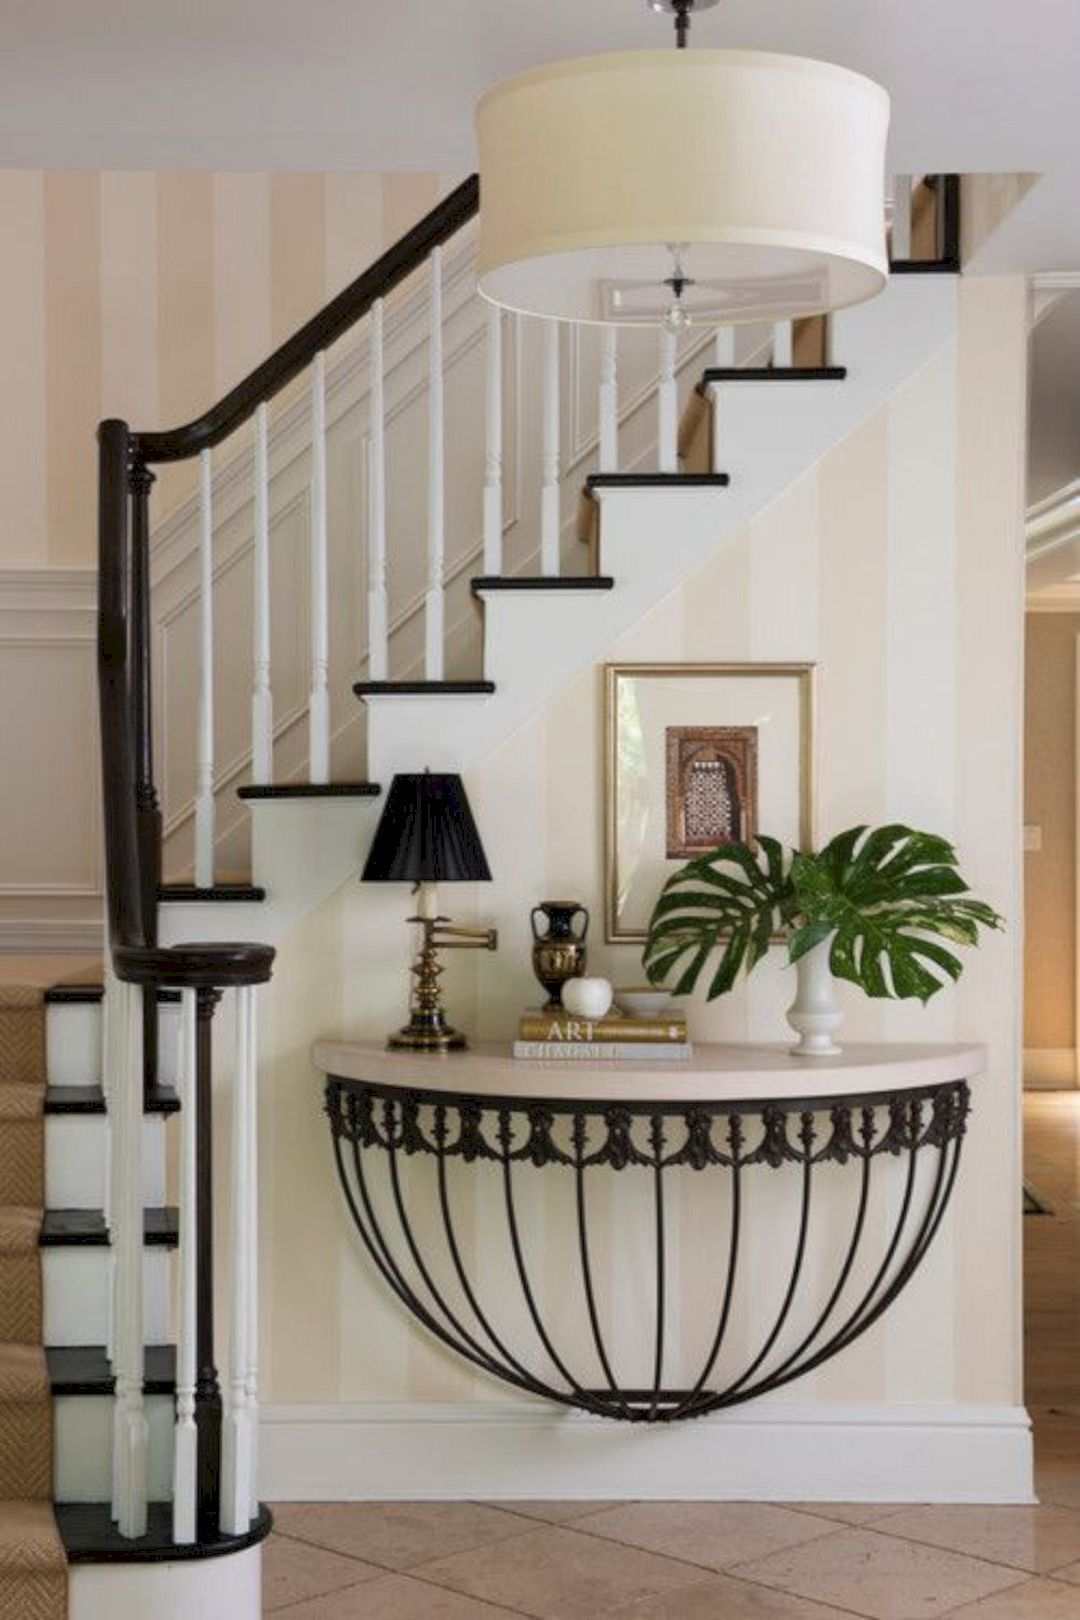 16 Awesome Foyer Furniture Ideas  Https://www.futuristarchitecture.com/31993 Foyer Furniture Ideas.html